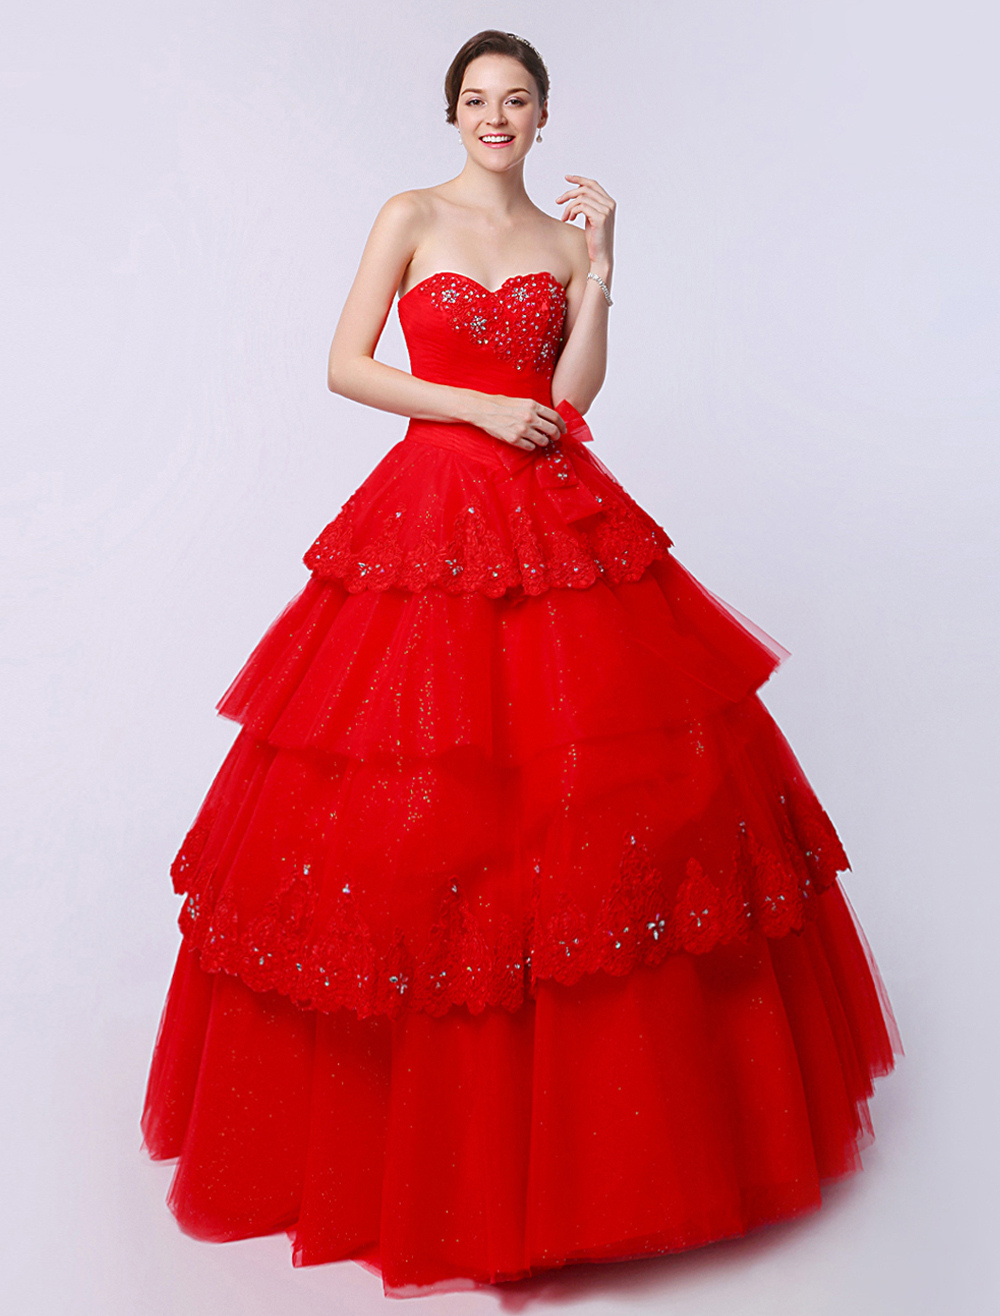 Red Floor-Length Ball Gown Quinceanera Beaded Dress with Applique (Wedding Quinceanera Dresses) photo